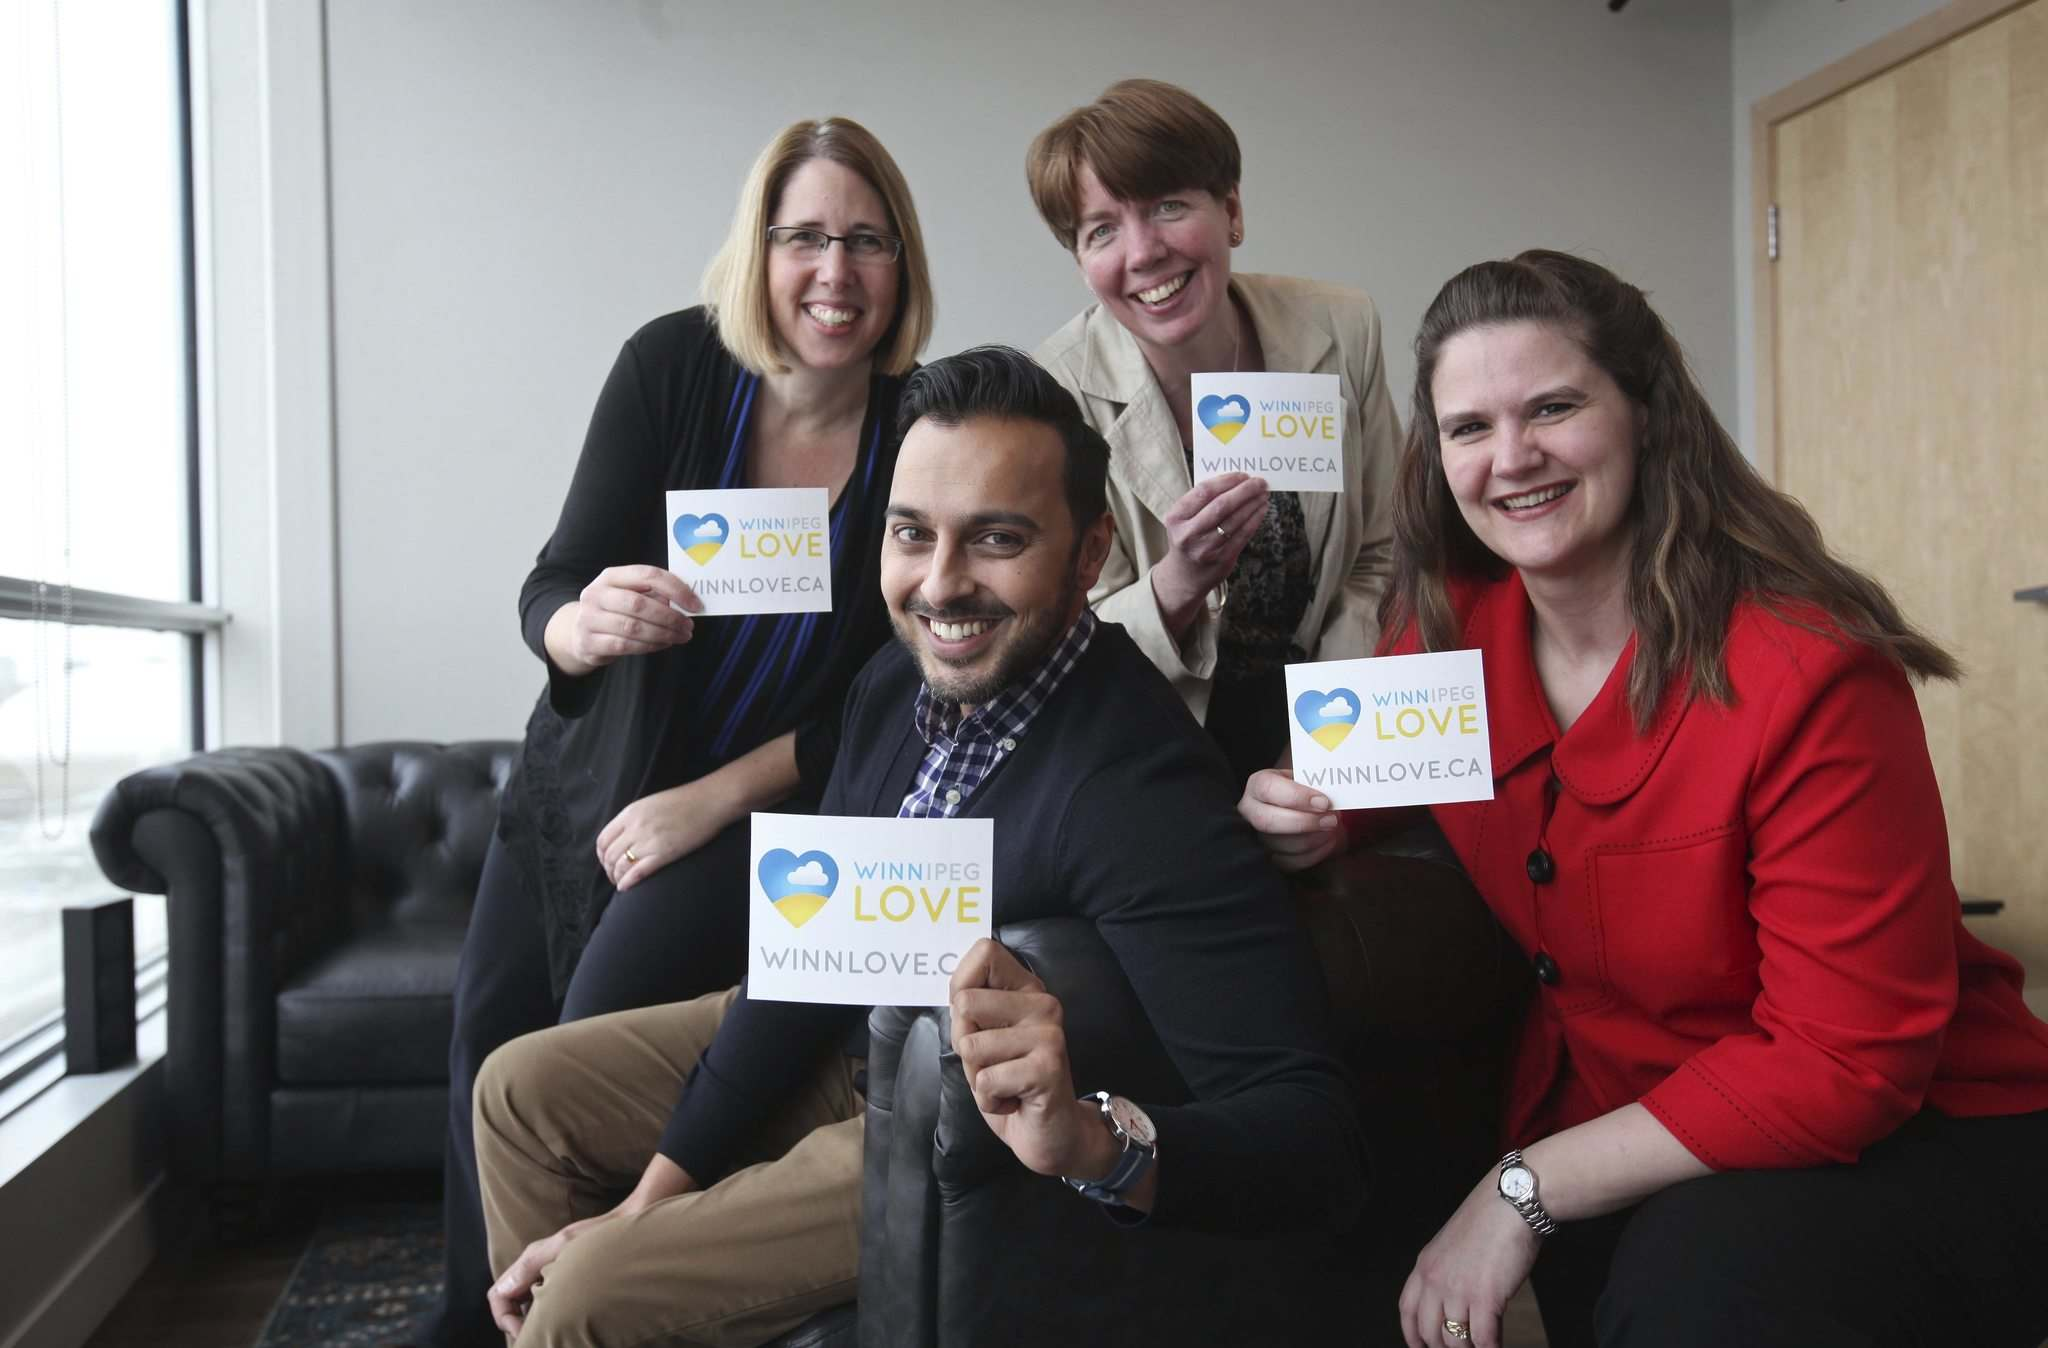 RUTH BONNEVILLE / WINNIPEG FREE PRESS</p><p>Four of the seven clinical psychologists involved with the WinnLove campaign (from left): Dr. Tiffany Lippens, Dr. Rehman Abdulrehman, Dr. Alana Grayston and Dr. Jo Unger.</p></p>